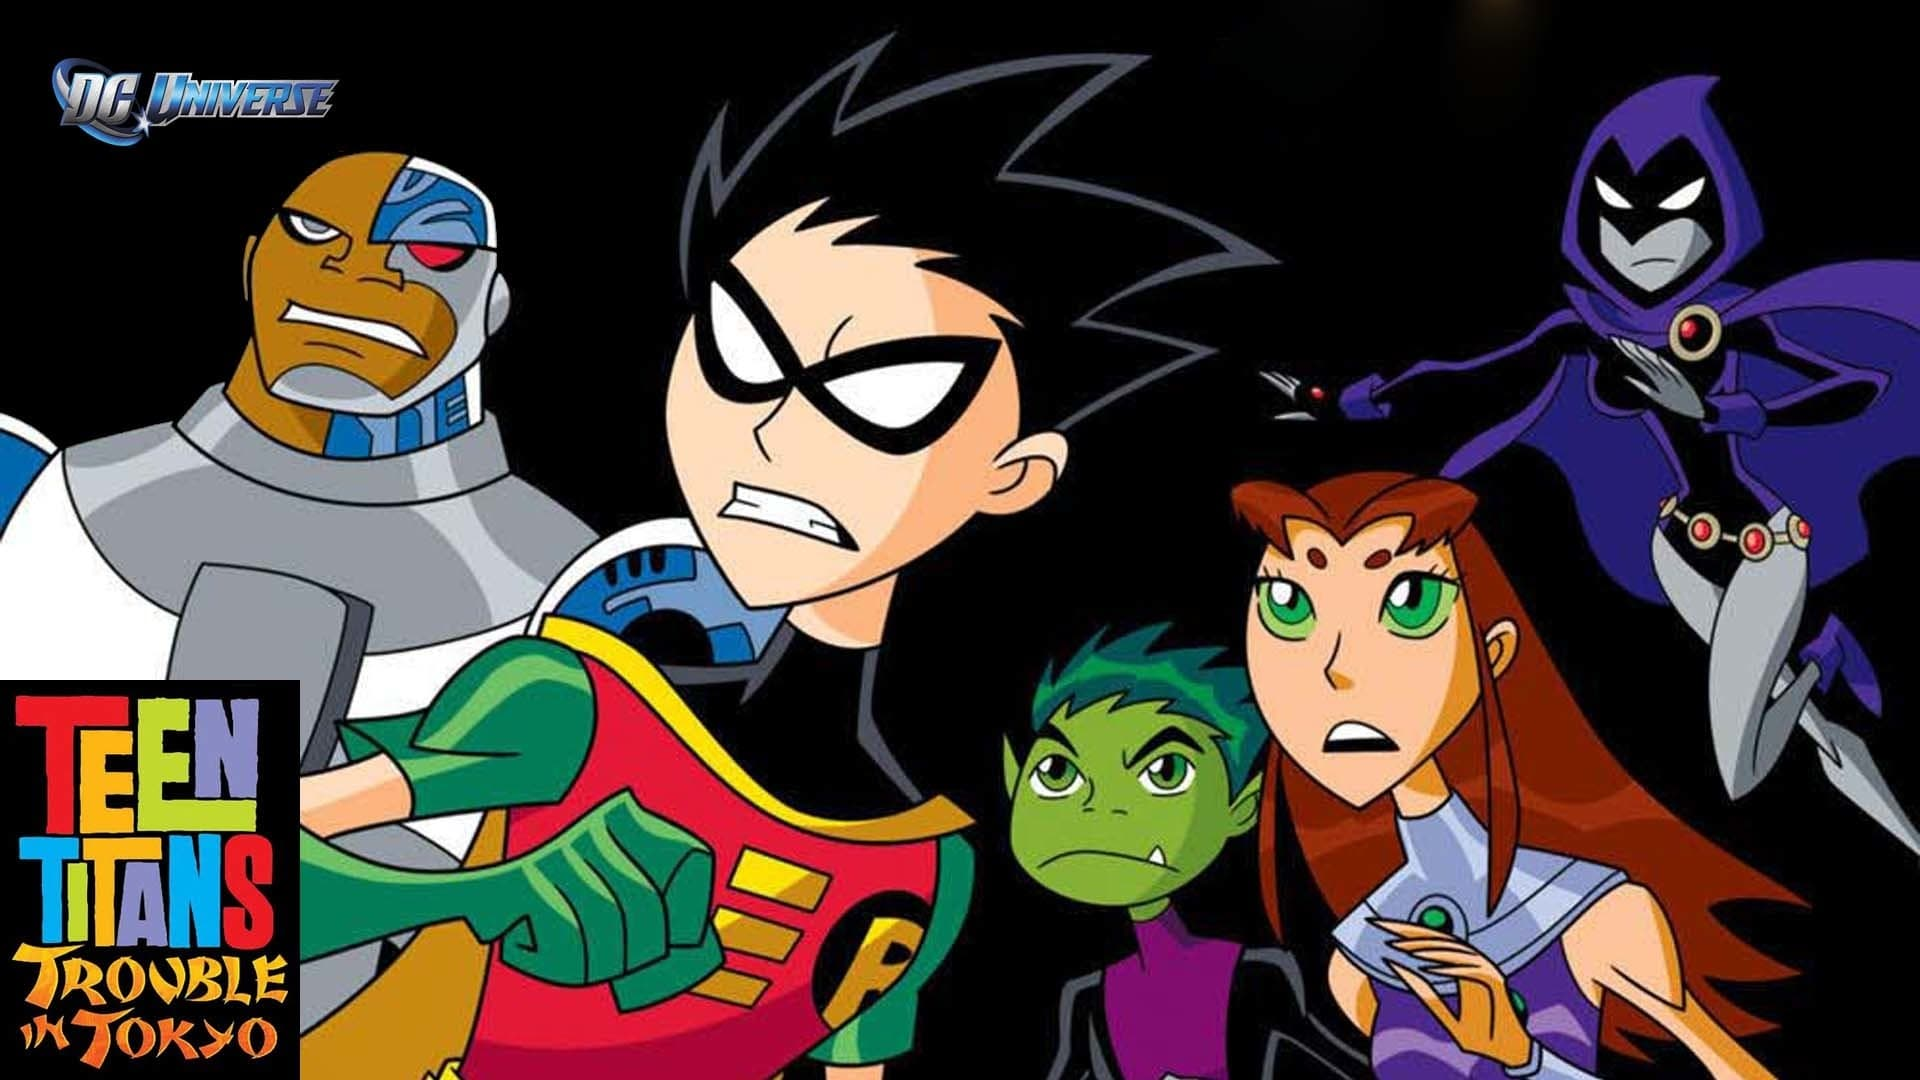 Very grateful Teen titans clips